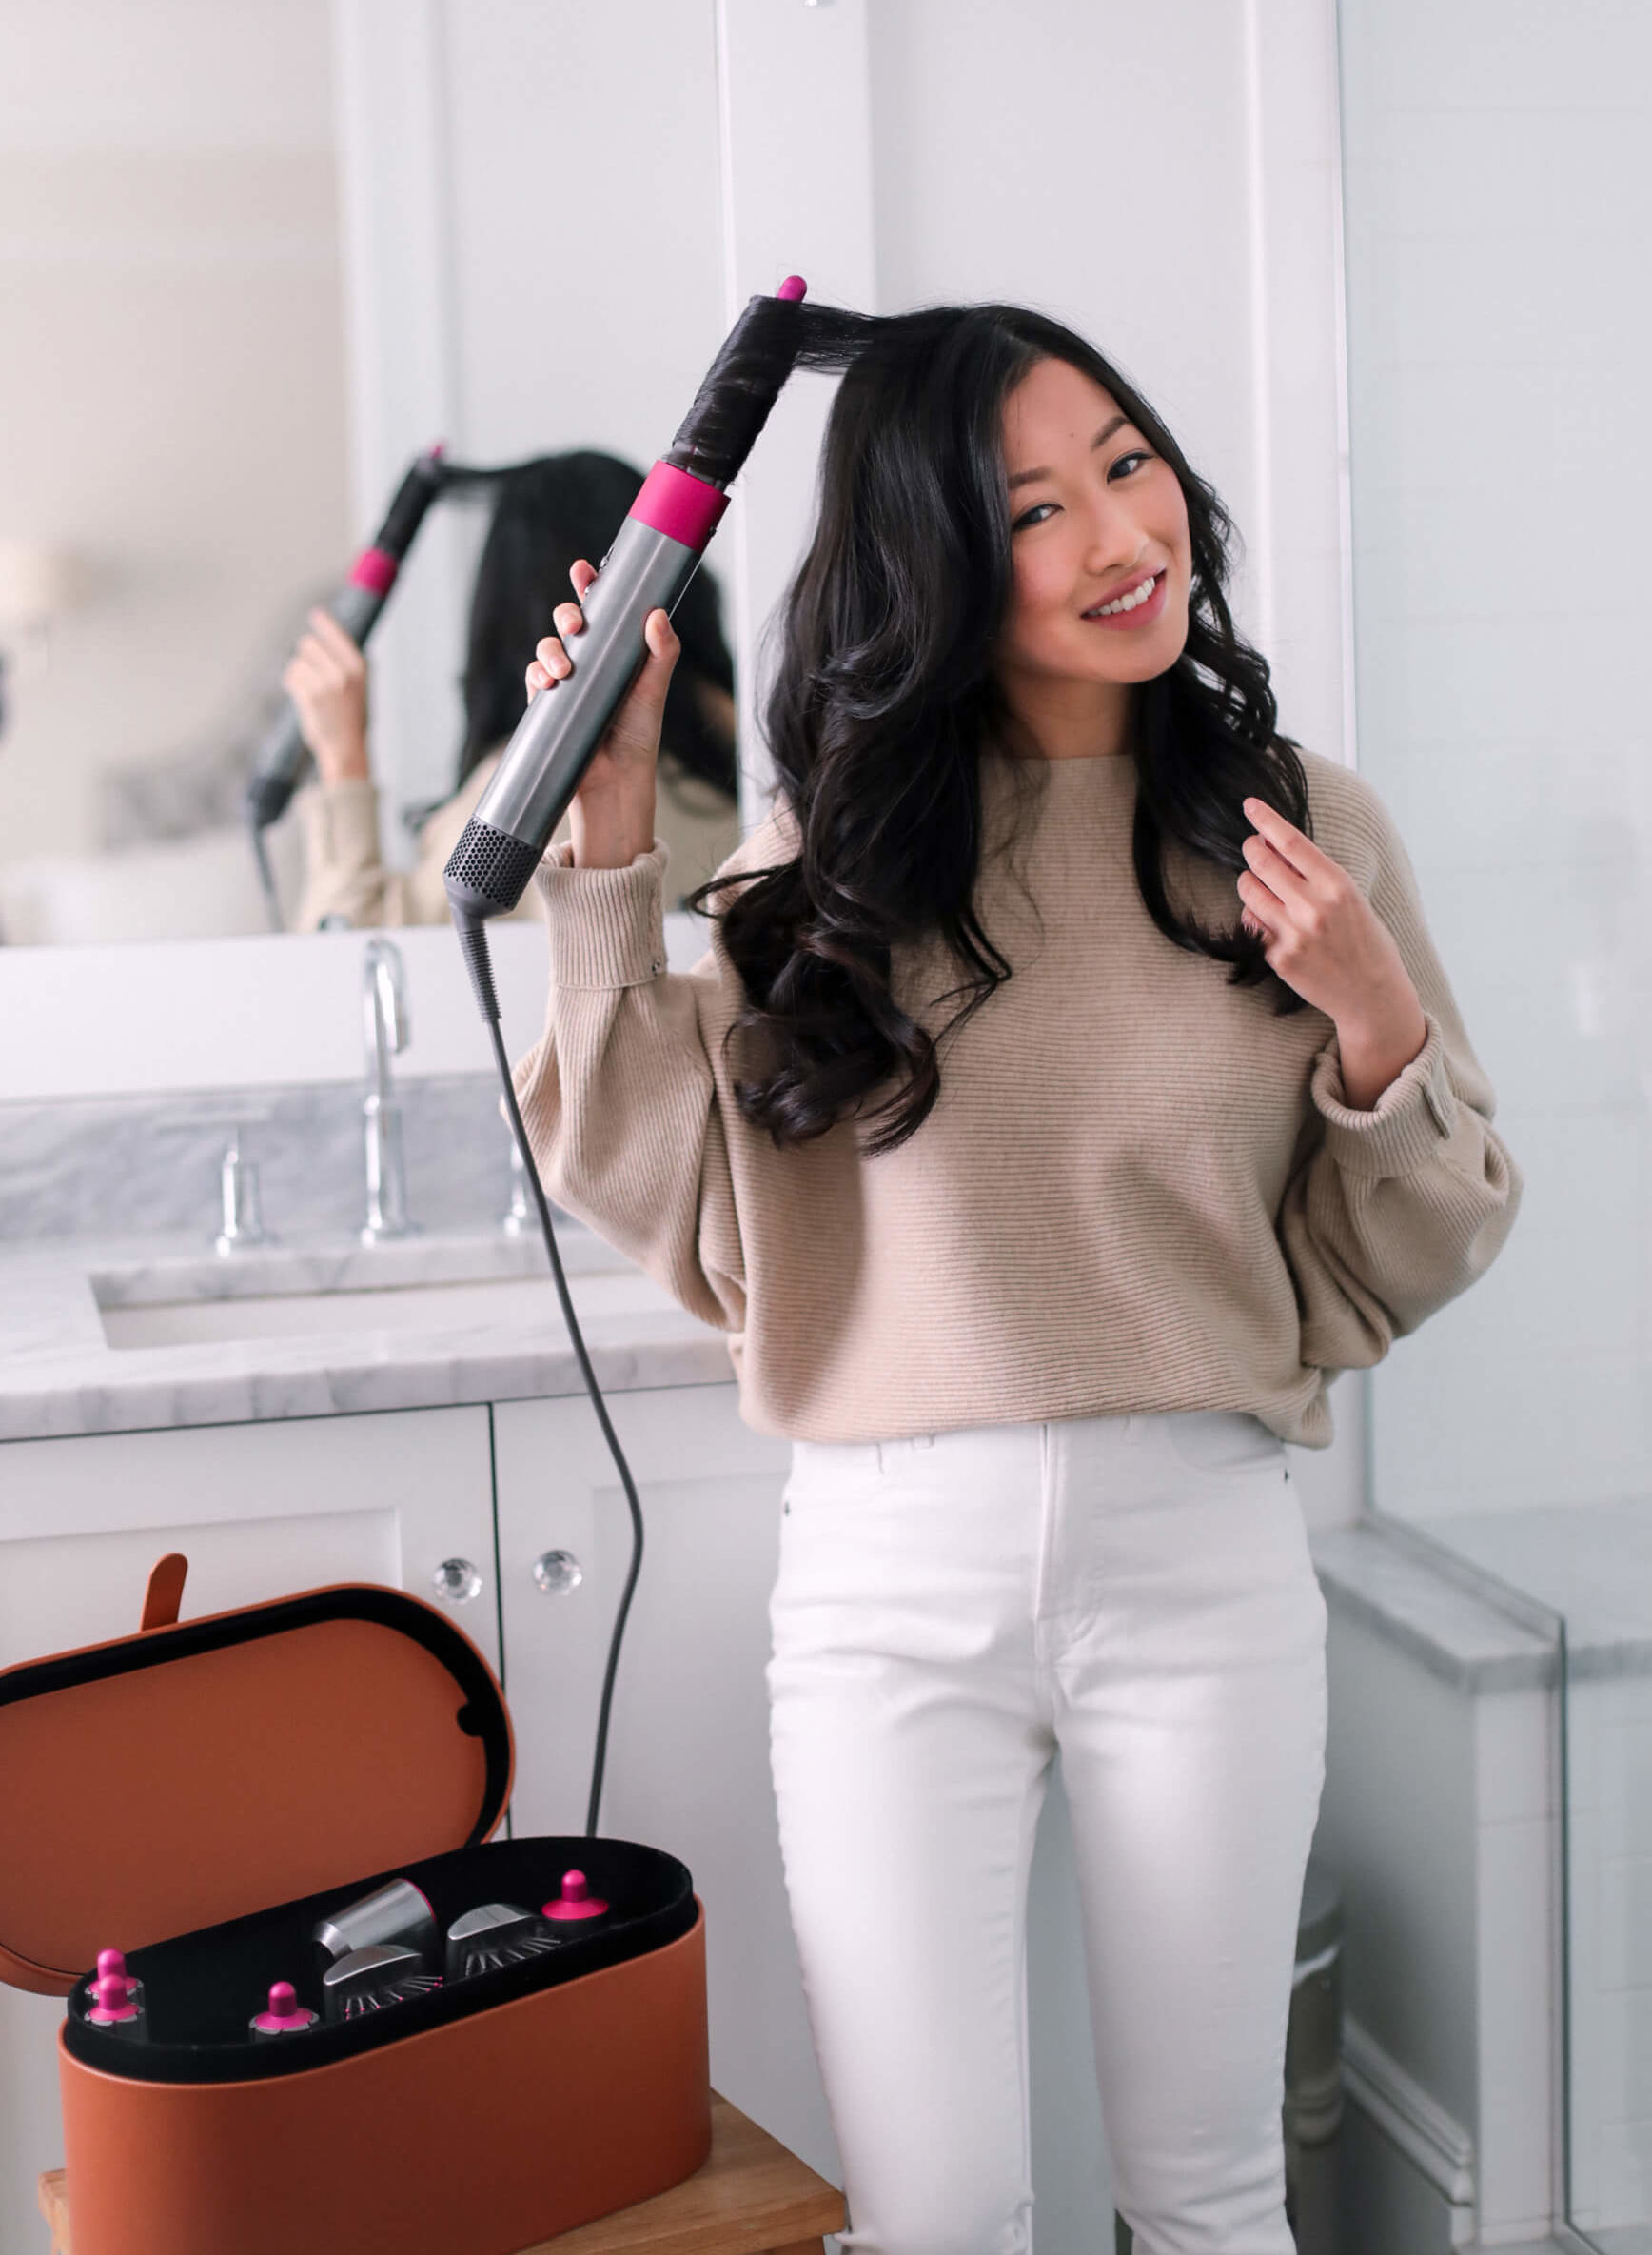 Dyson Airwrap review on long asian hair